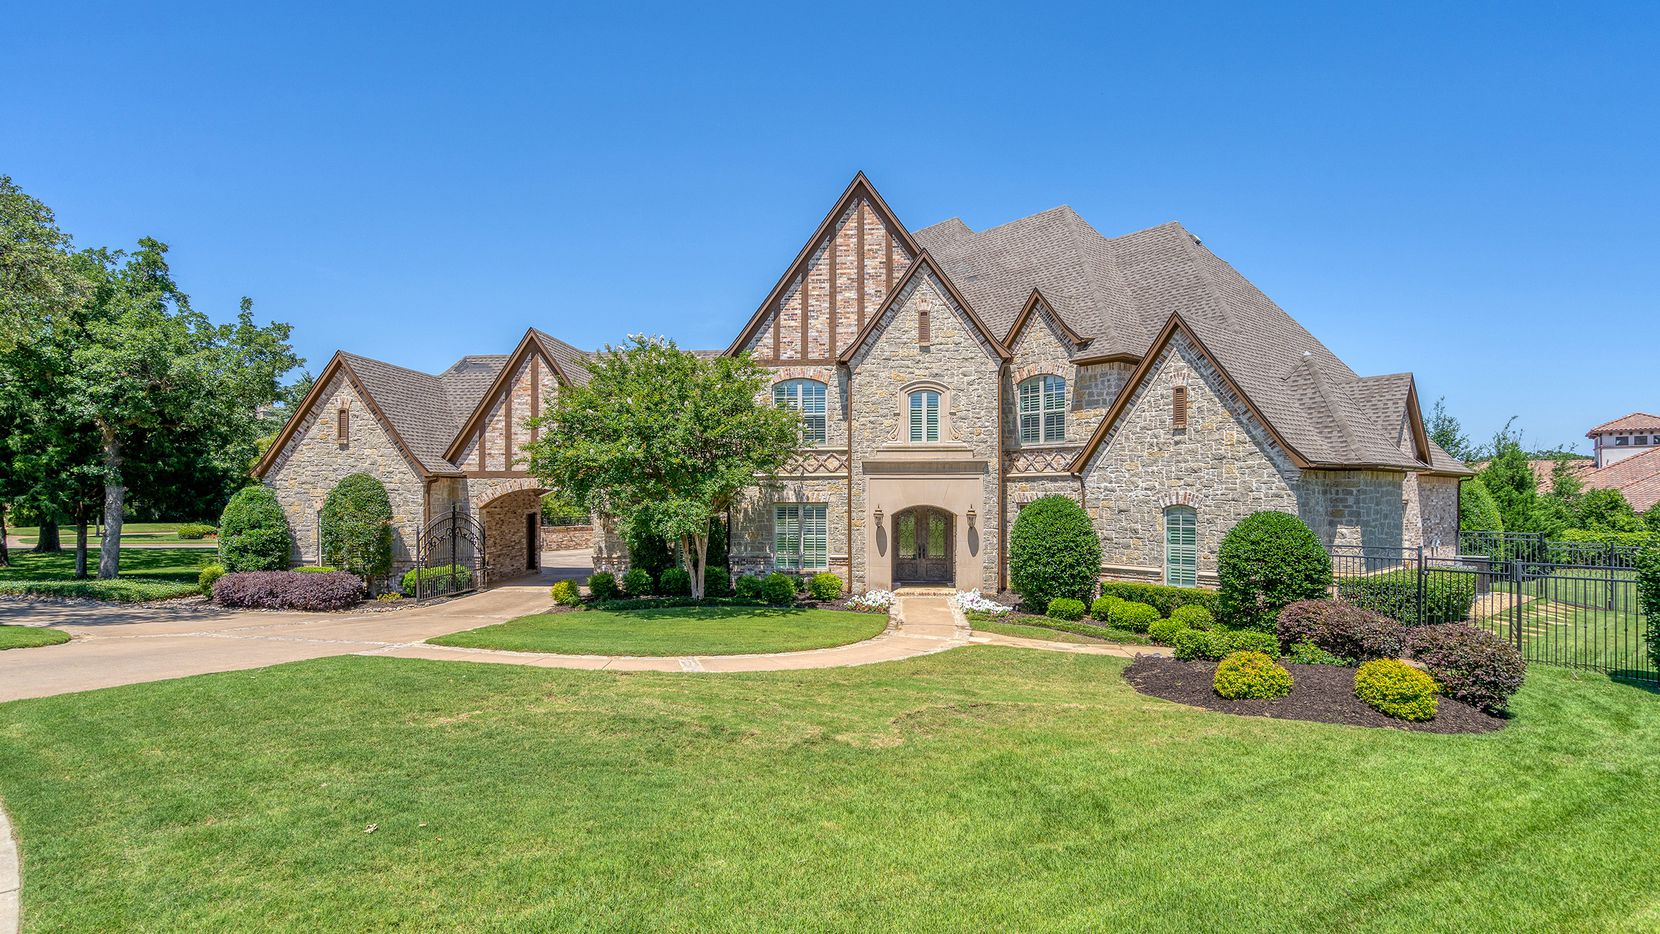 The 1-acre property at 1257 Biltmore Drive in Southlake's Westwyck Hills features a recently renovated kitchen and a new price of $2,149,000.